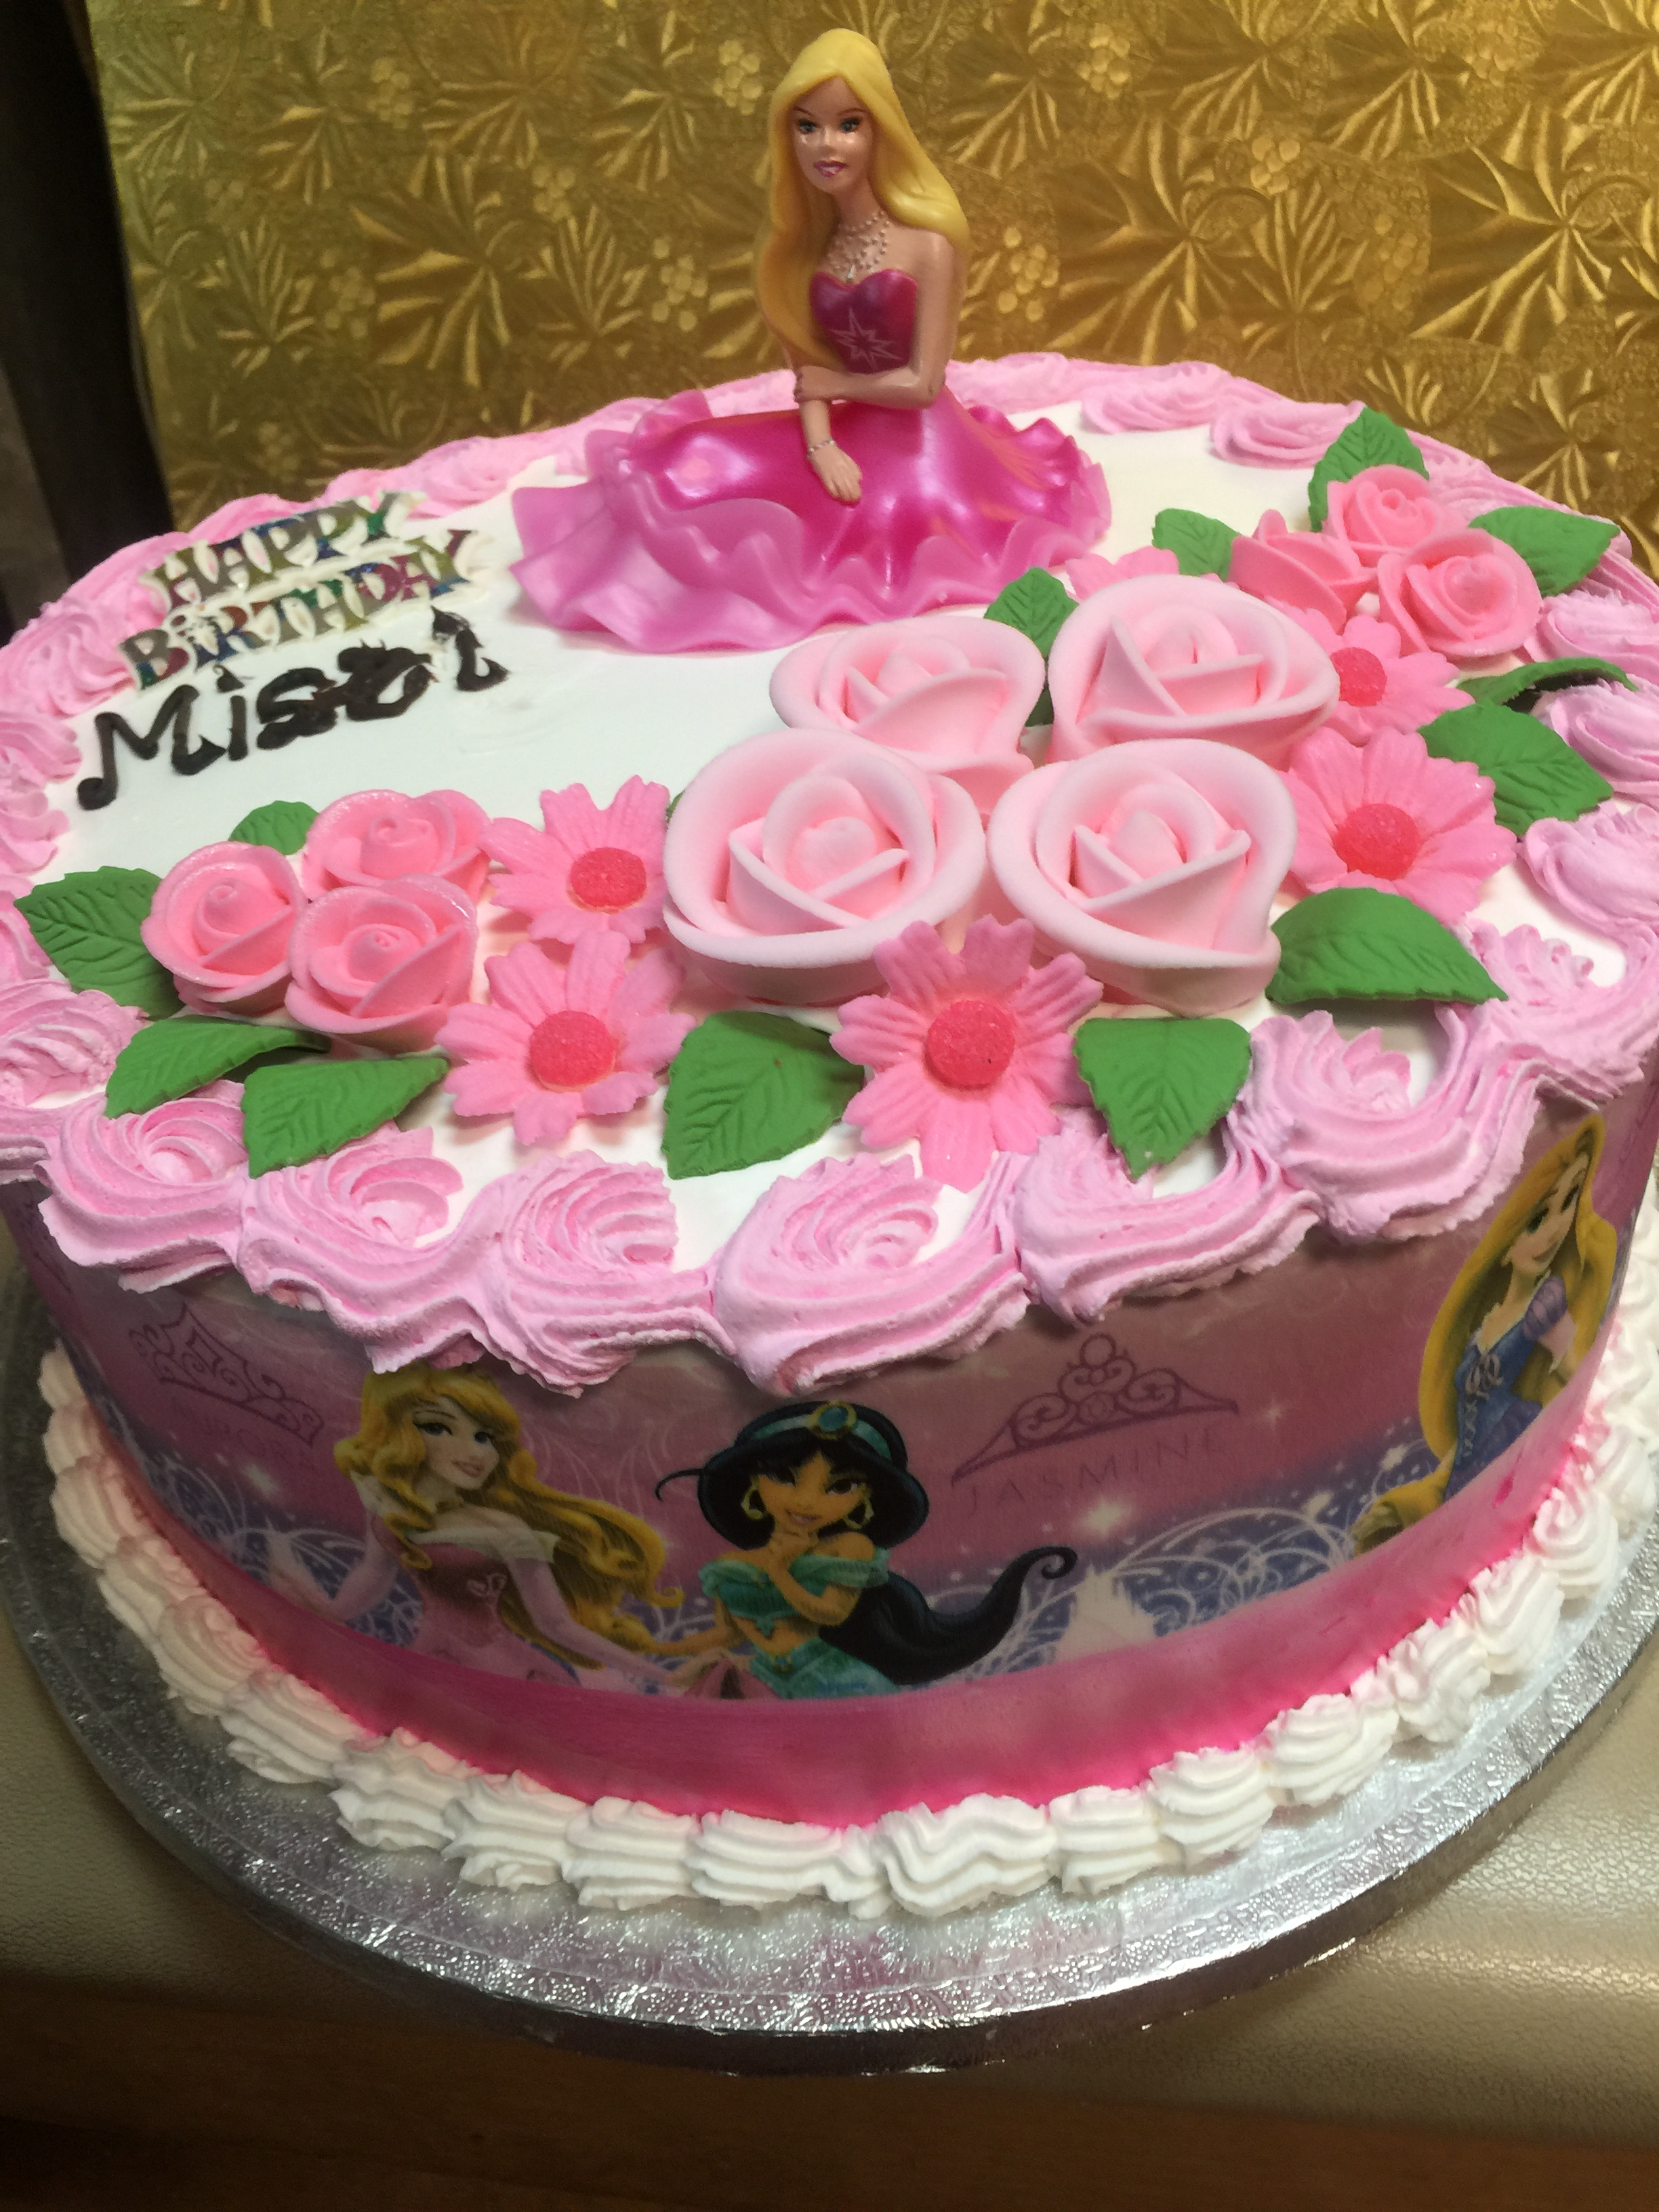 Disney Princess Birthday Cake Wild Berries Bakery And Cafe